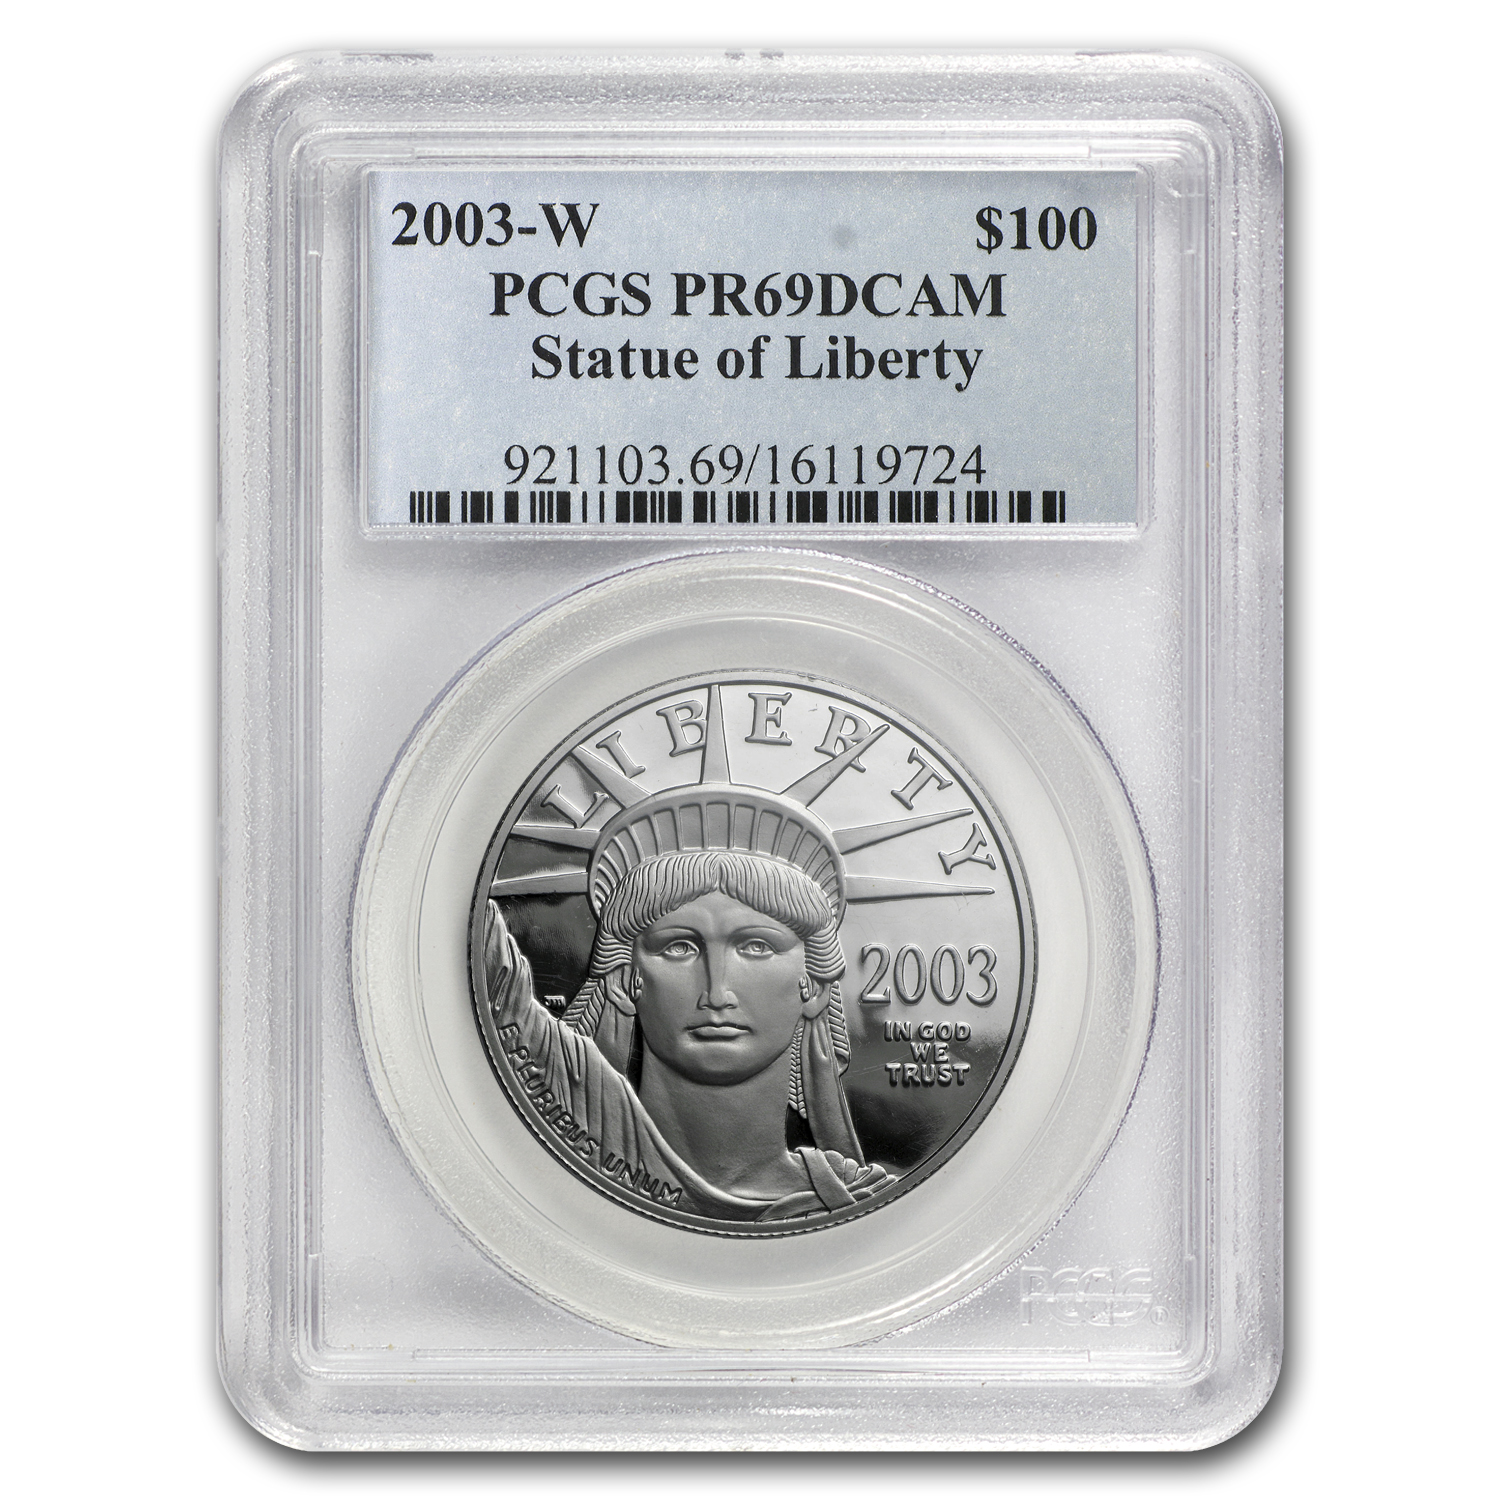 2003-W 1 oz Proof Platinum American Eagle PR-69 PCGS